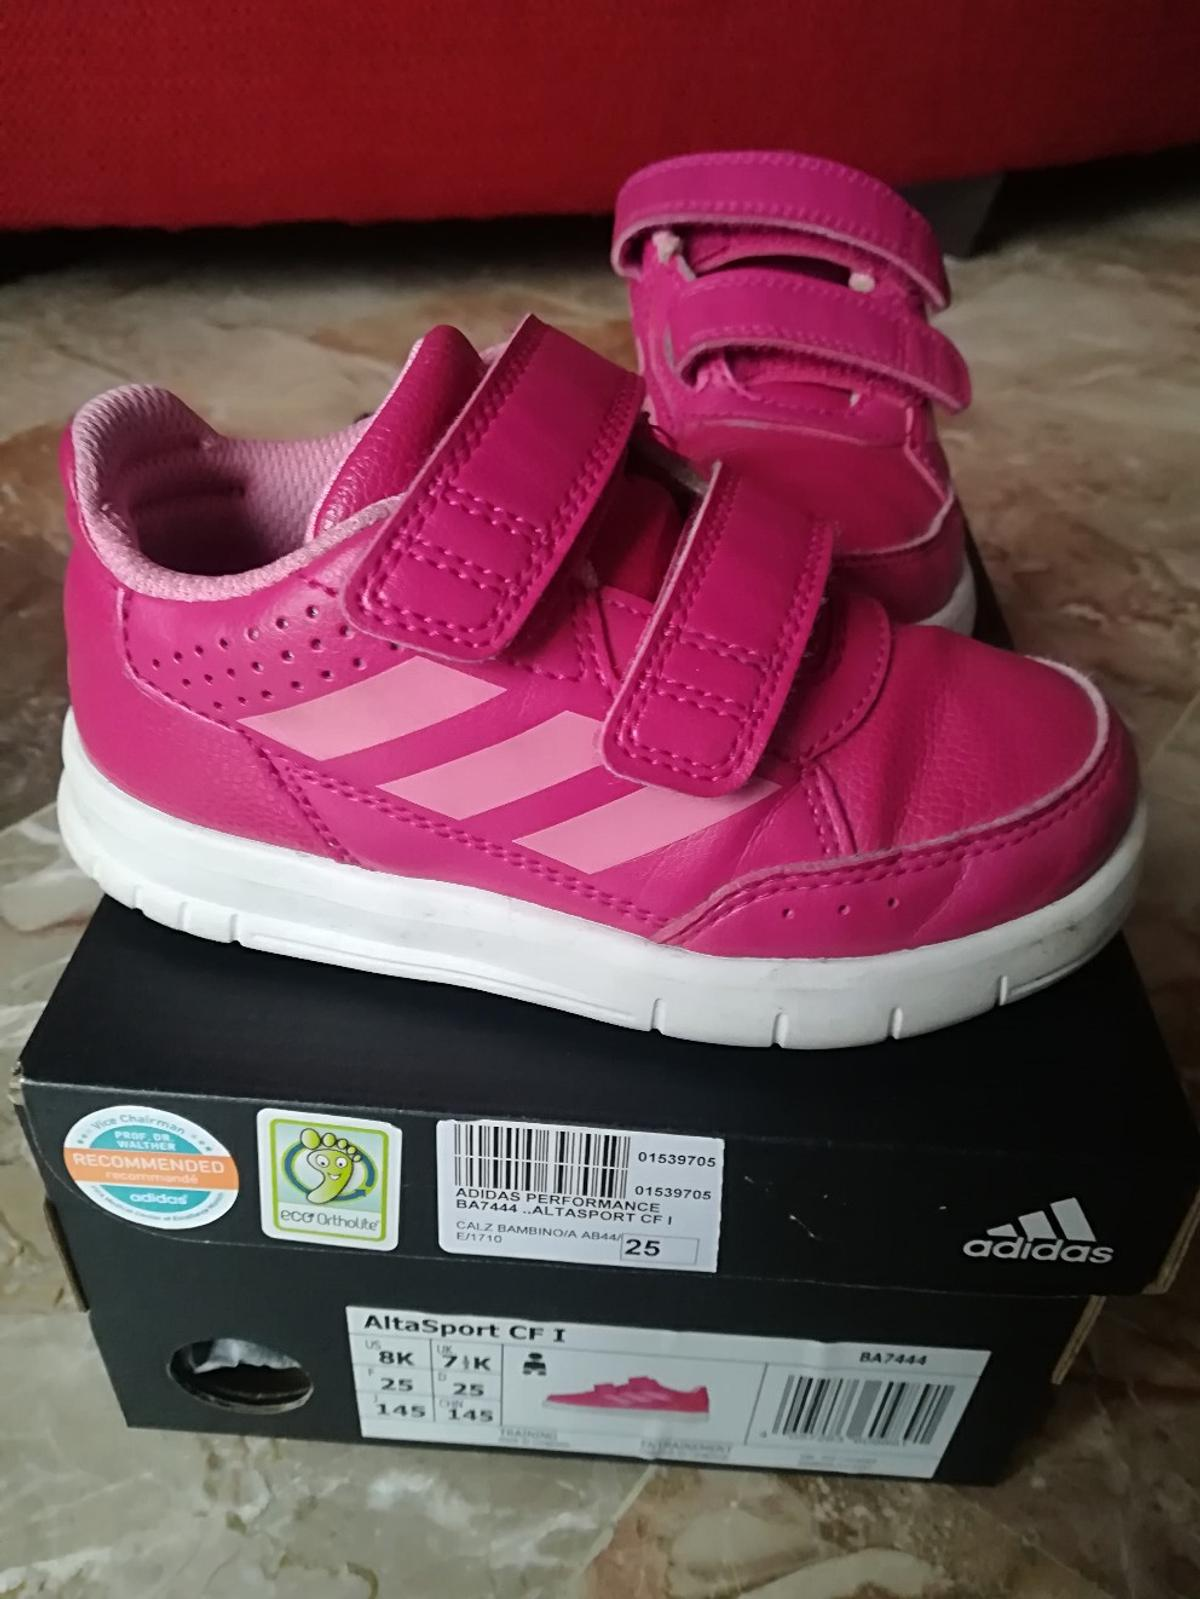 adidas n. 25 come nuove in 40139 Bologna for €15.00 for sale